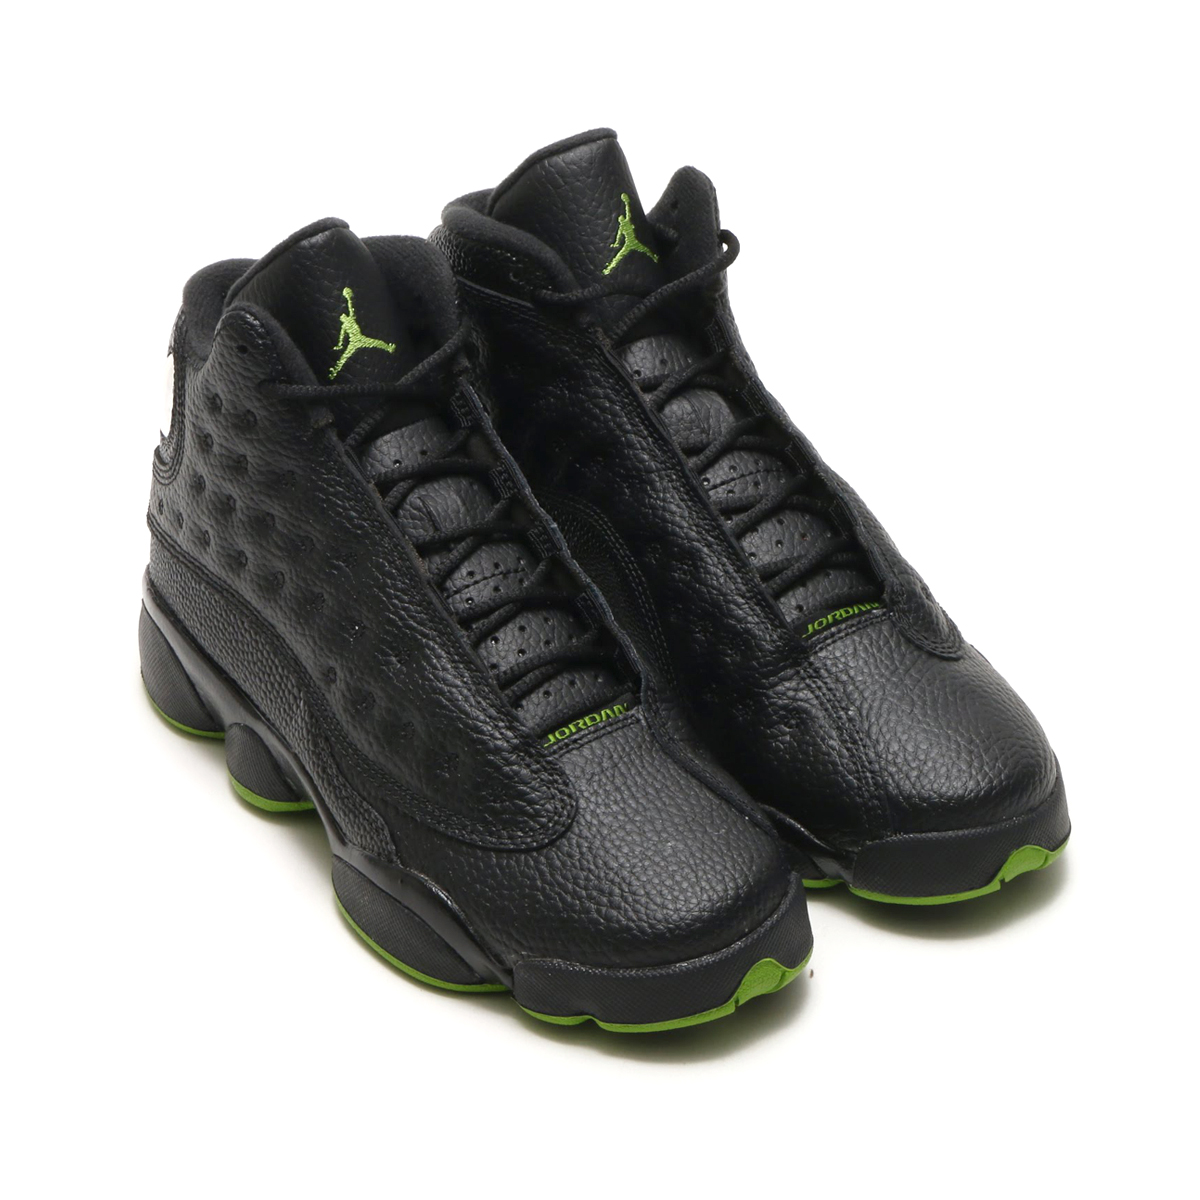 new product 1efcc 8ab7a It is about 2005 that Air Jordan 13 increased the new color that imaged Michael  Jordan moving like a Black Panther. I included full-scale leather  structure, ...